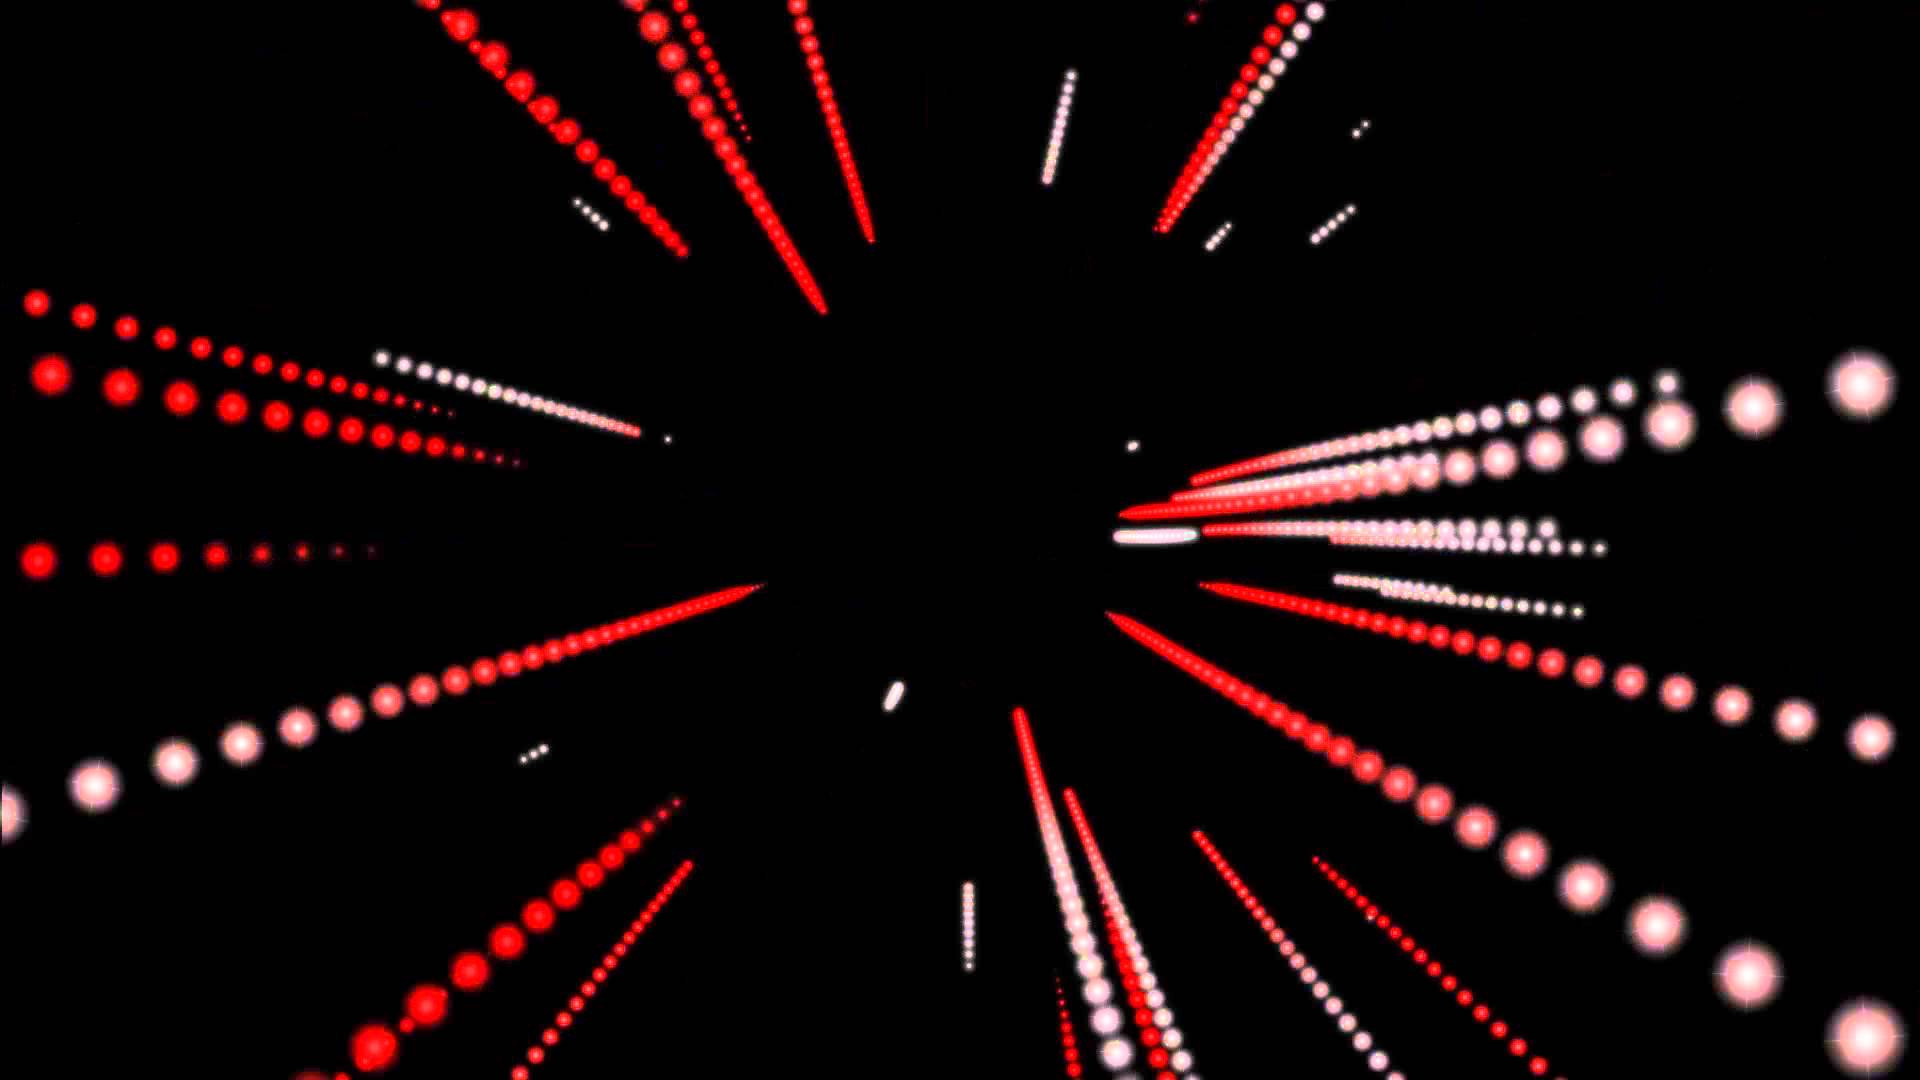 Laser Red ANIMATION Black Backgrounds FREE FOOTAGE HD